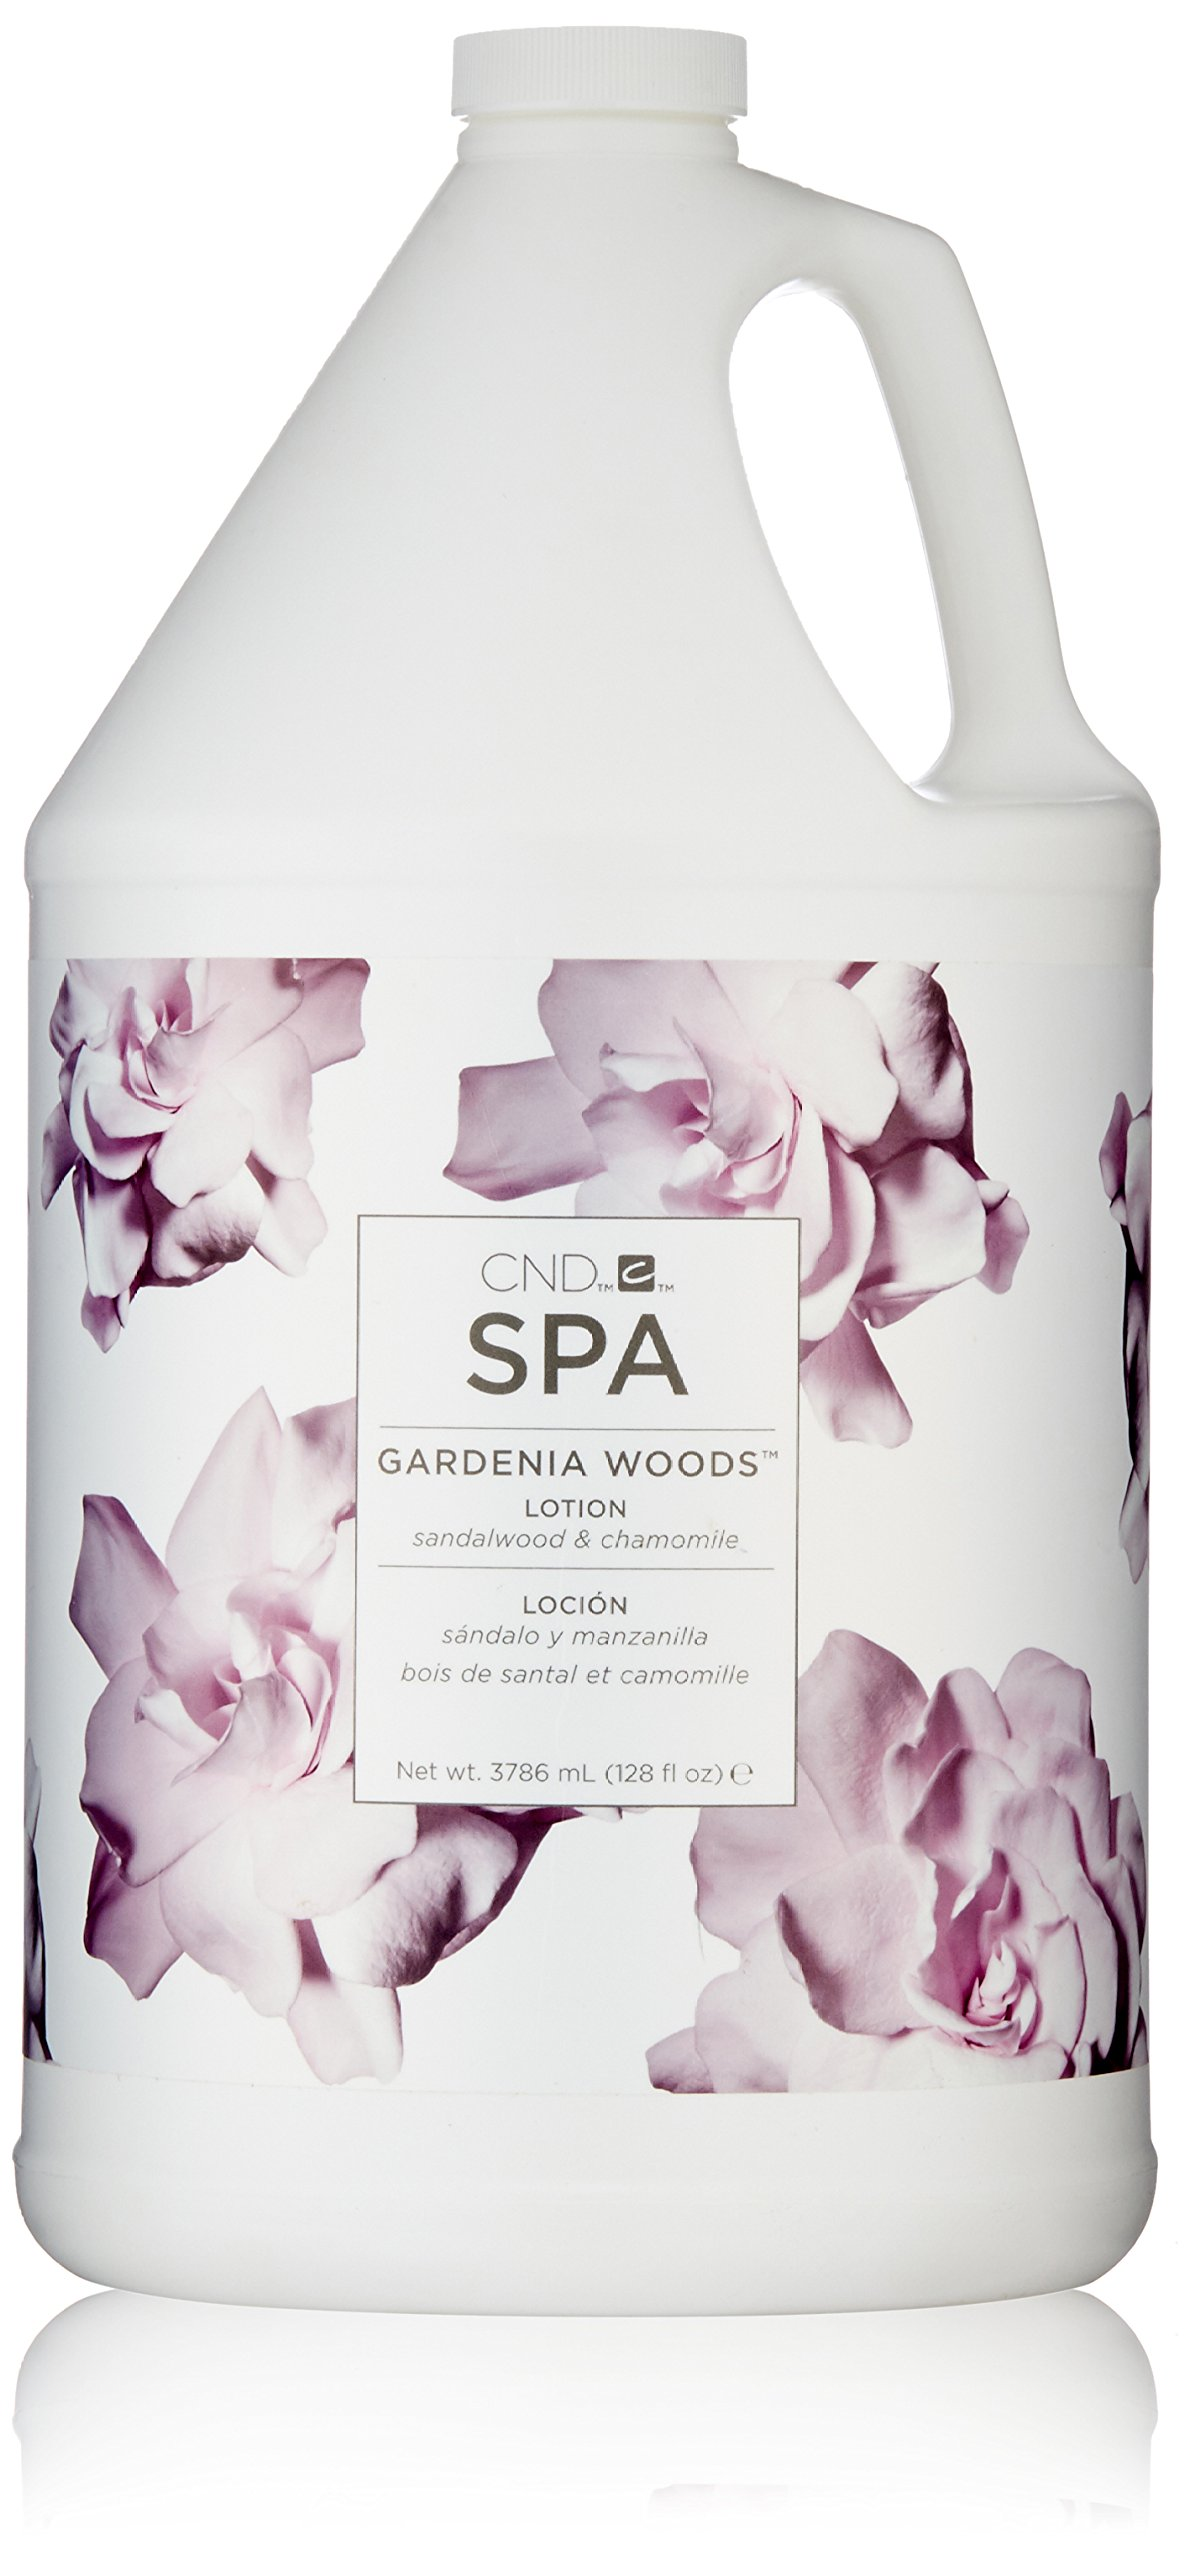 CND Gardenia Woods Lotion, 128 fl. oz.